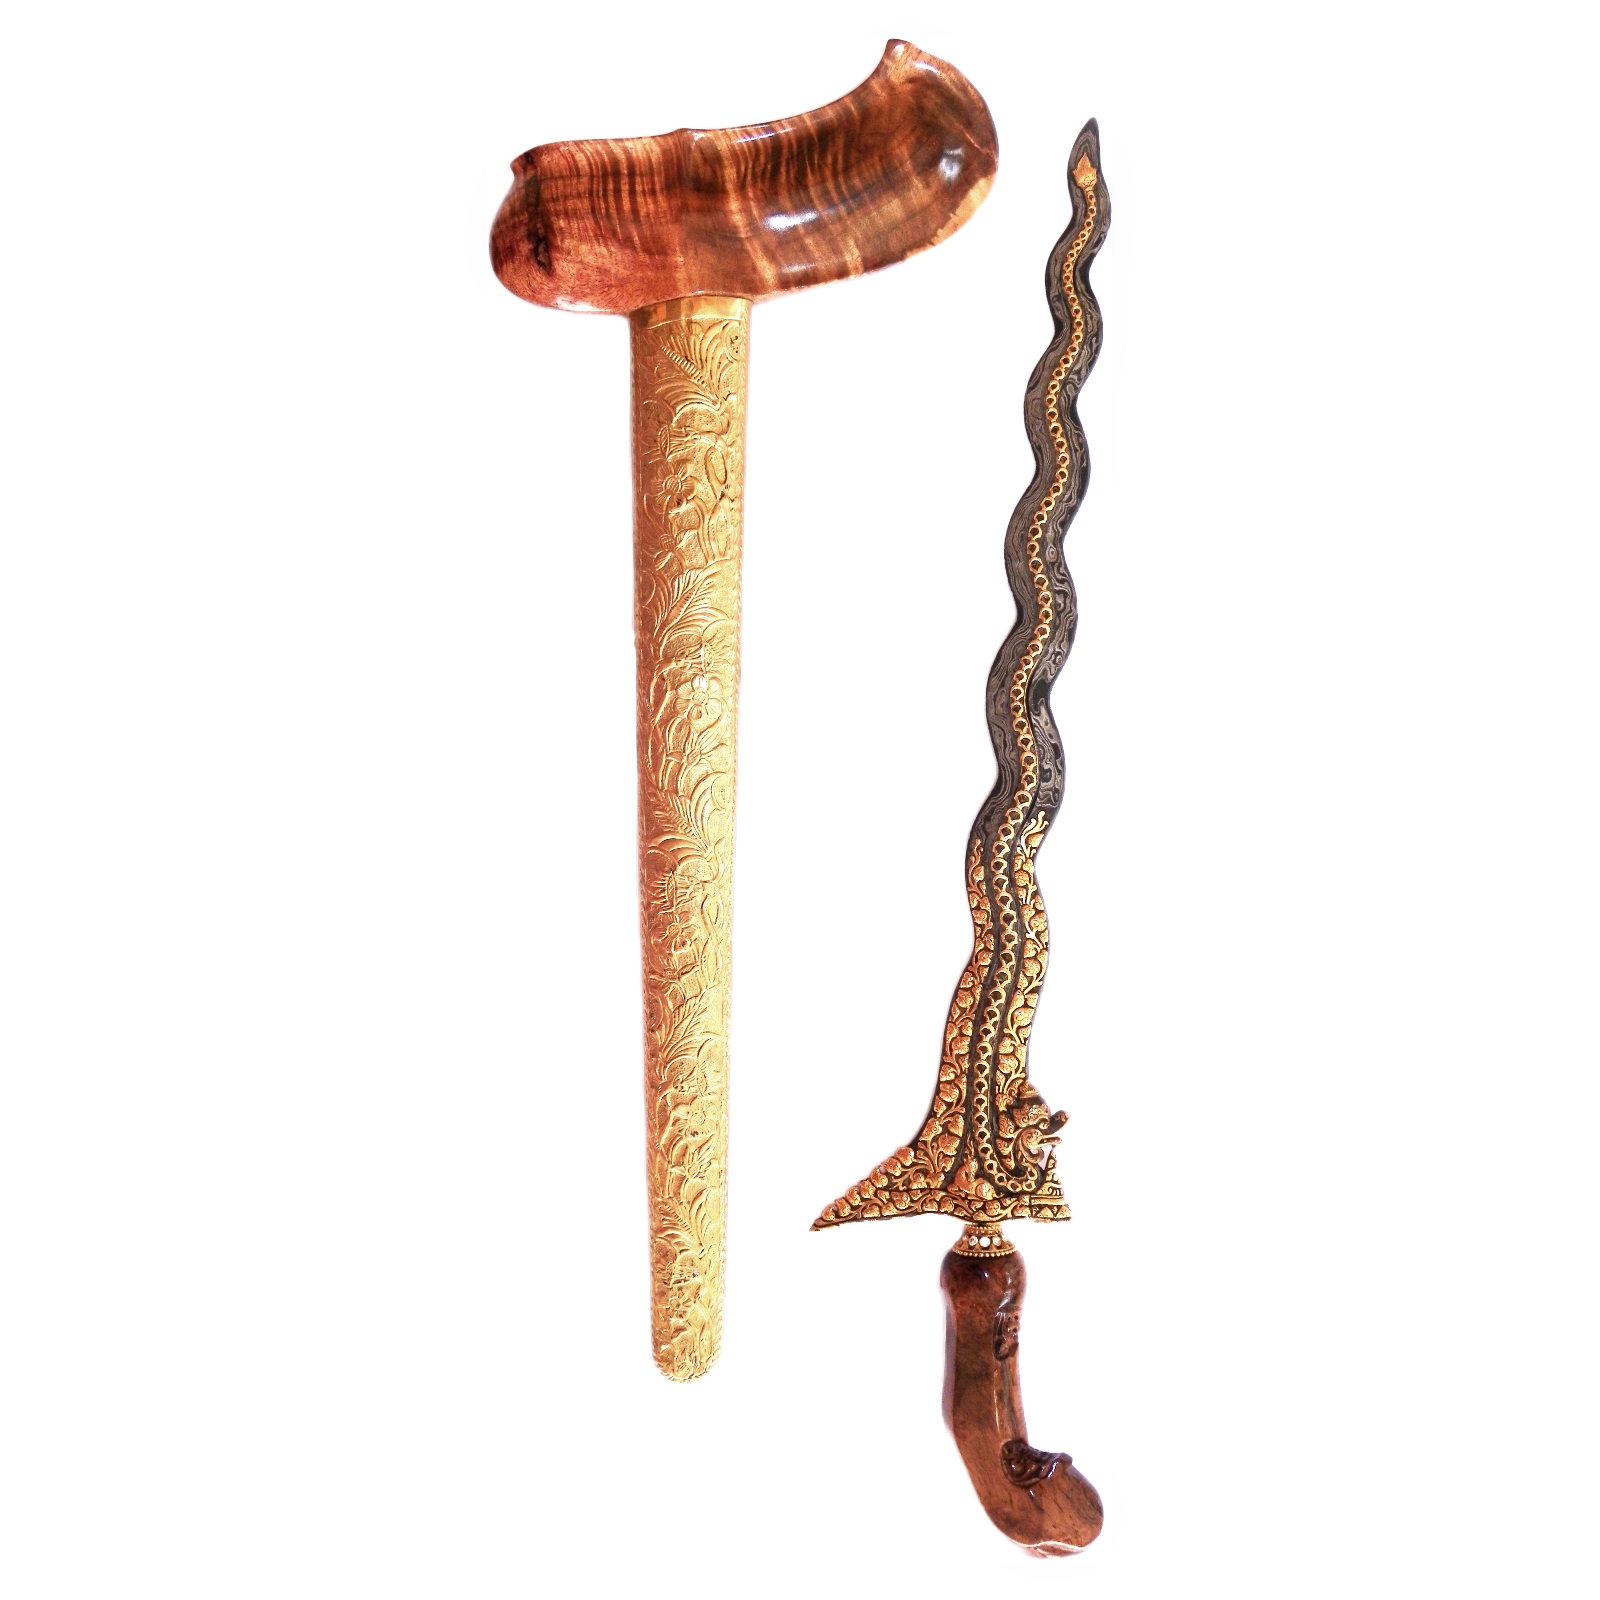 Keris Naga Sasra Luk 13 decorated with Gold-plated Silver Kinatah